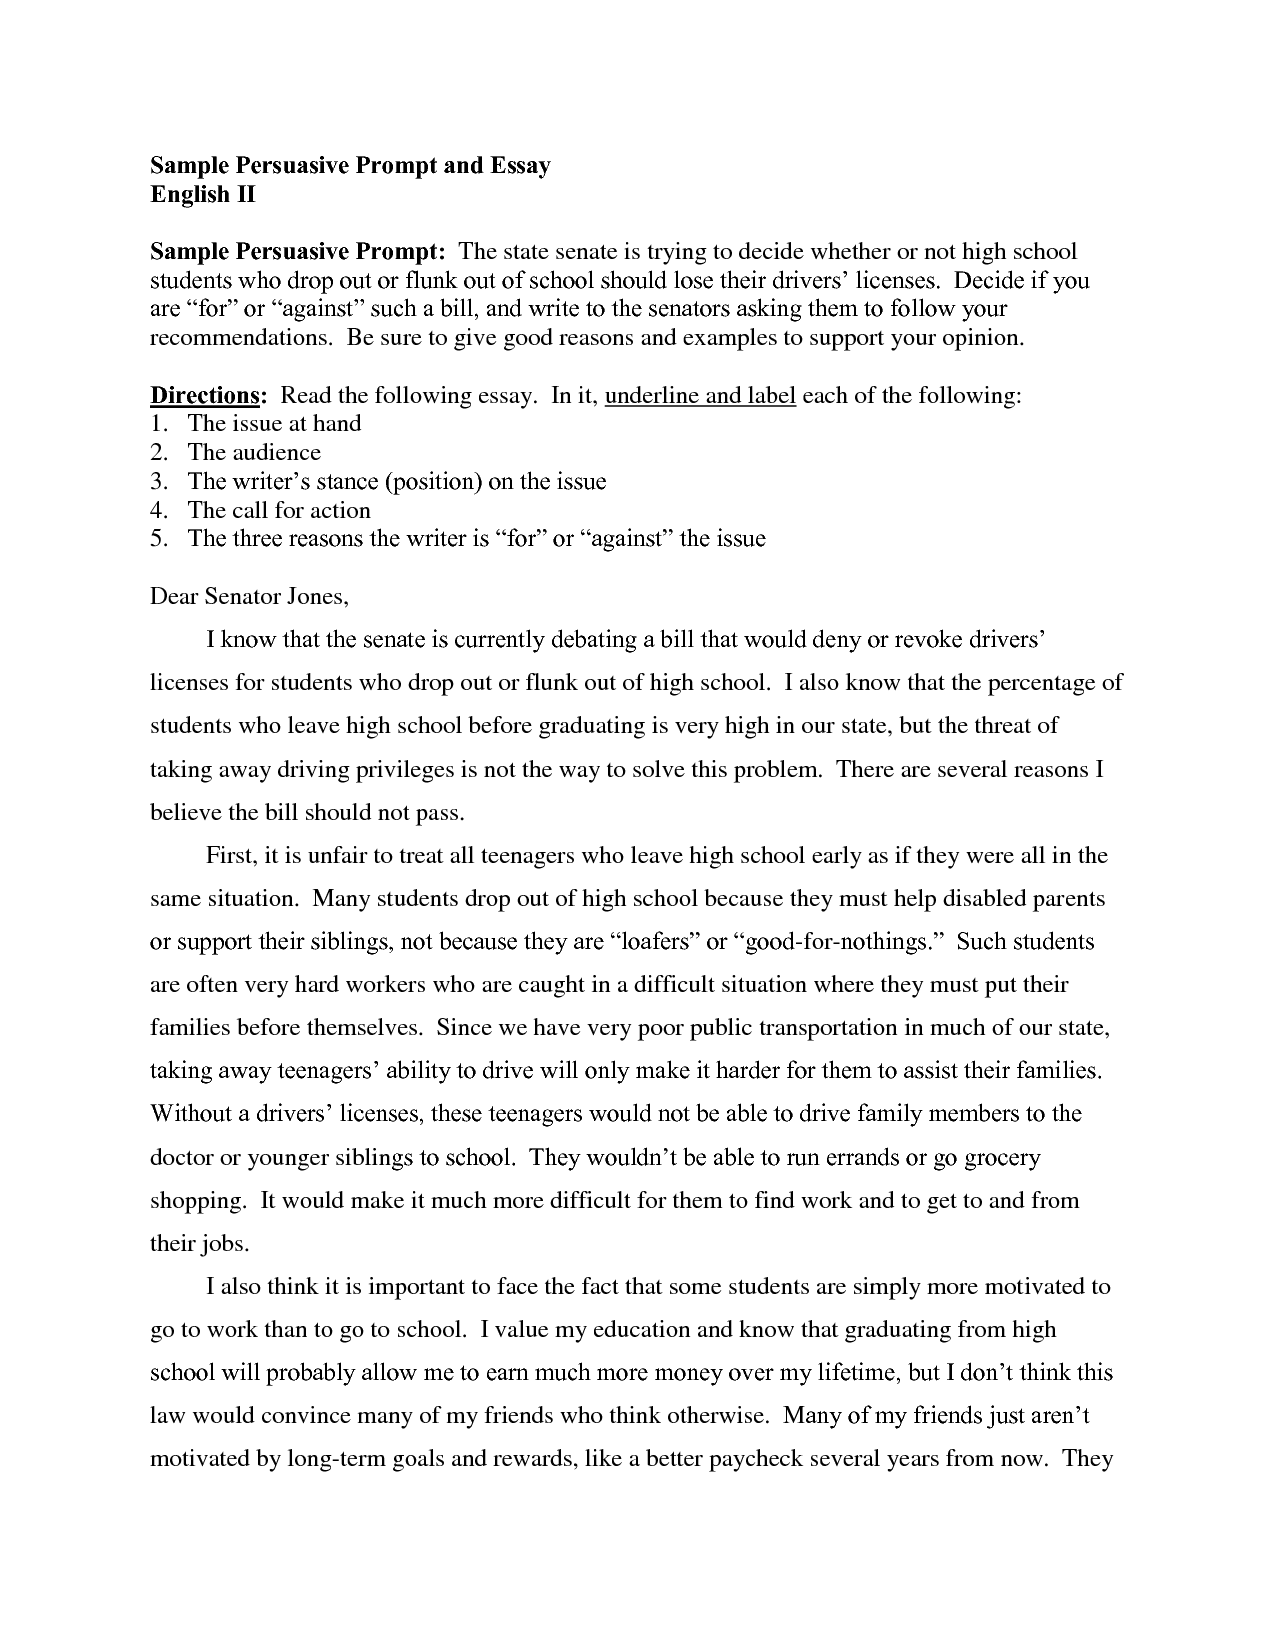 013 Research Paper Easy Topic Persuasive Essay Topics For High School Sample Ideas Highschool Students Good Prompt Funny Fun List Of Seniors Writing English Sensational Psychology Biology Full